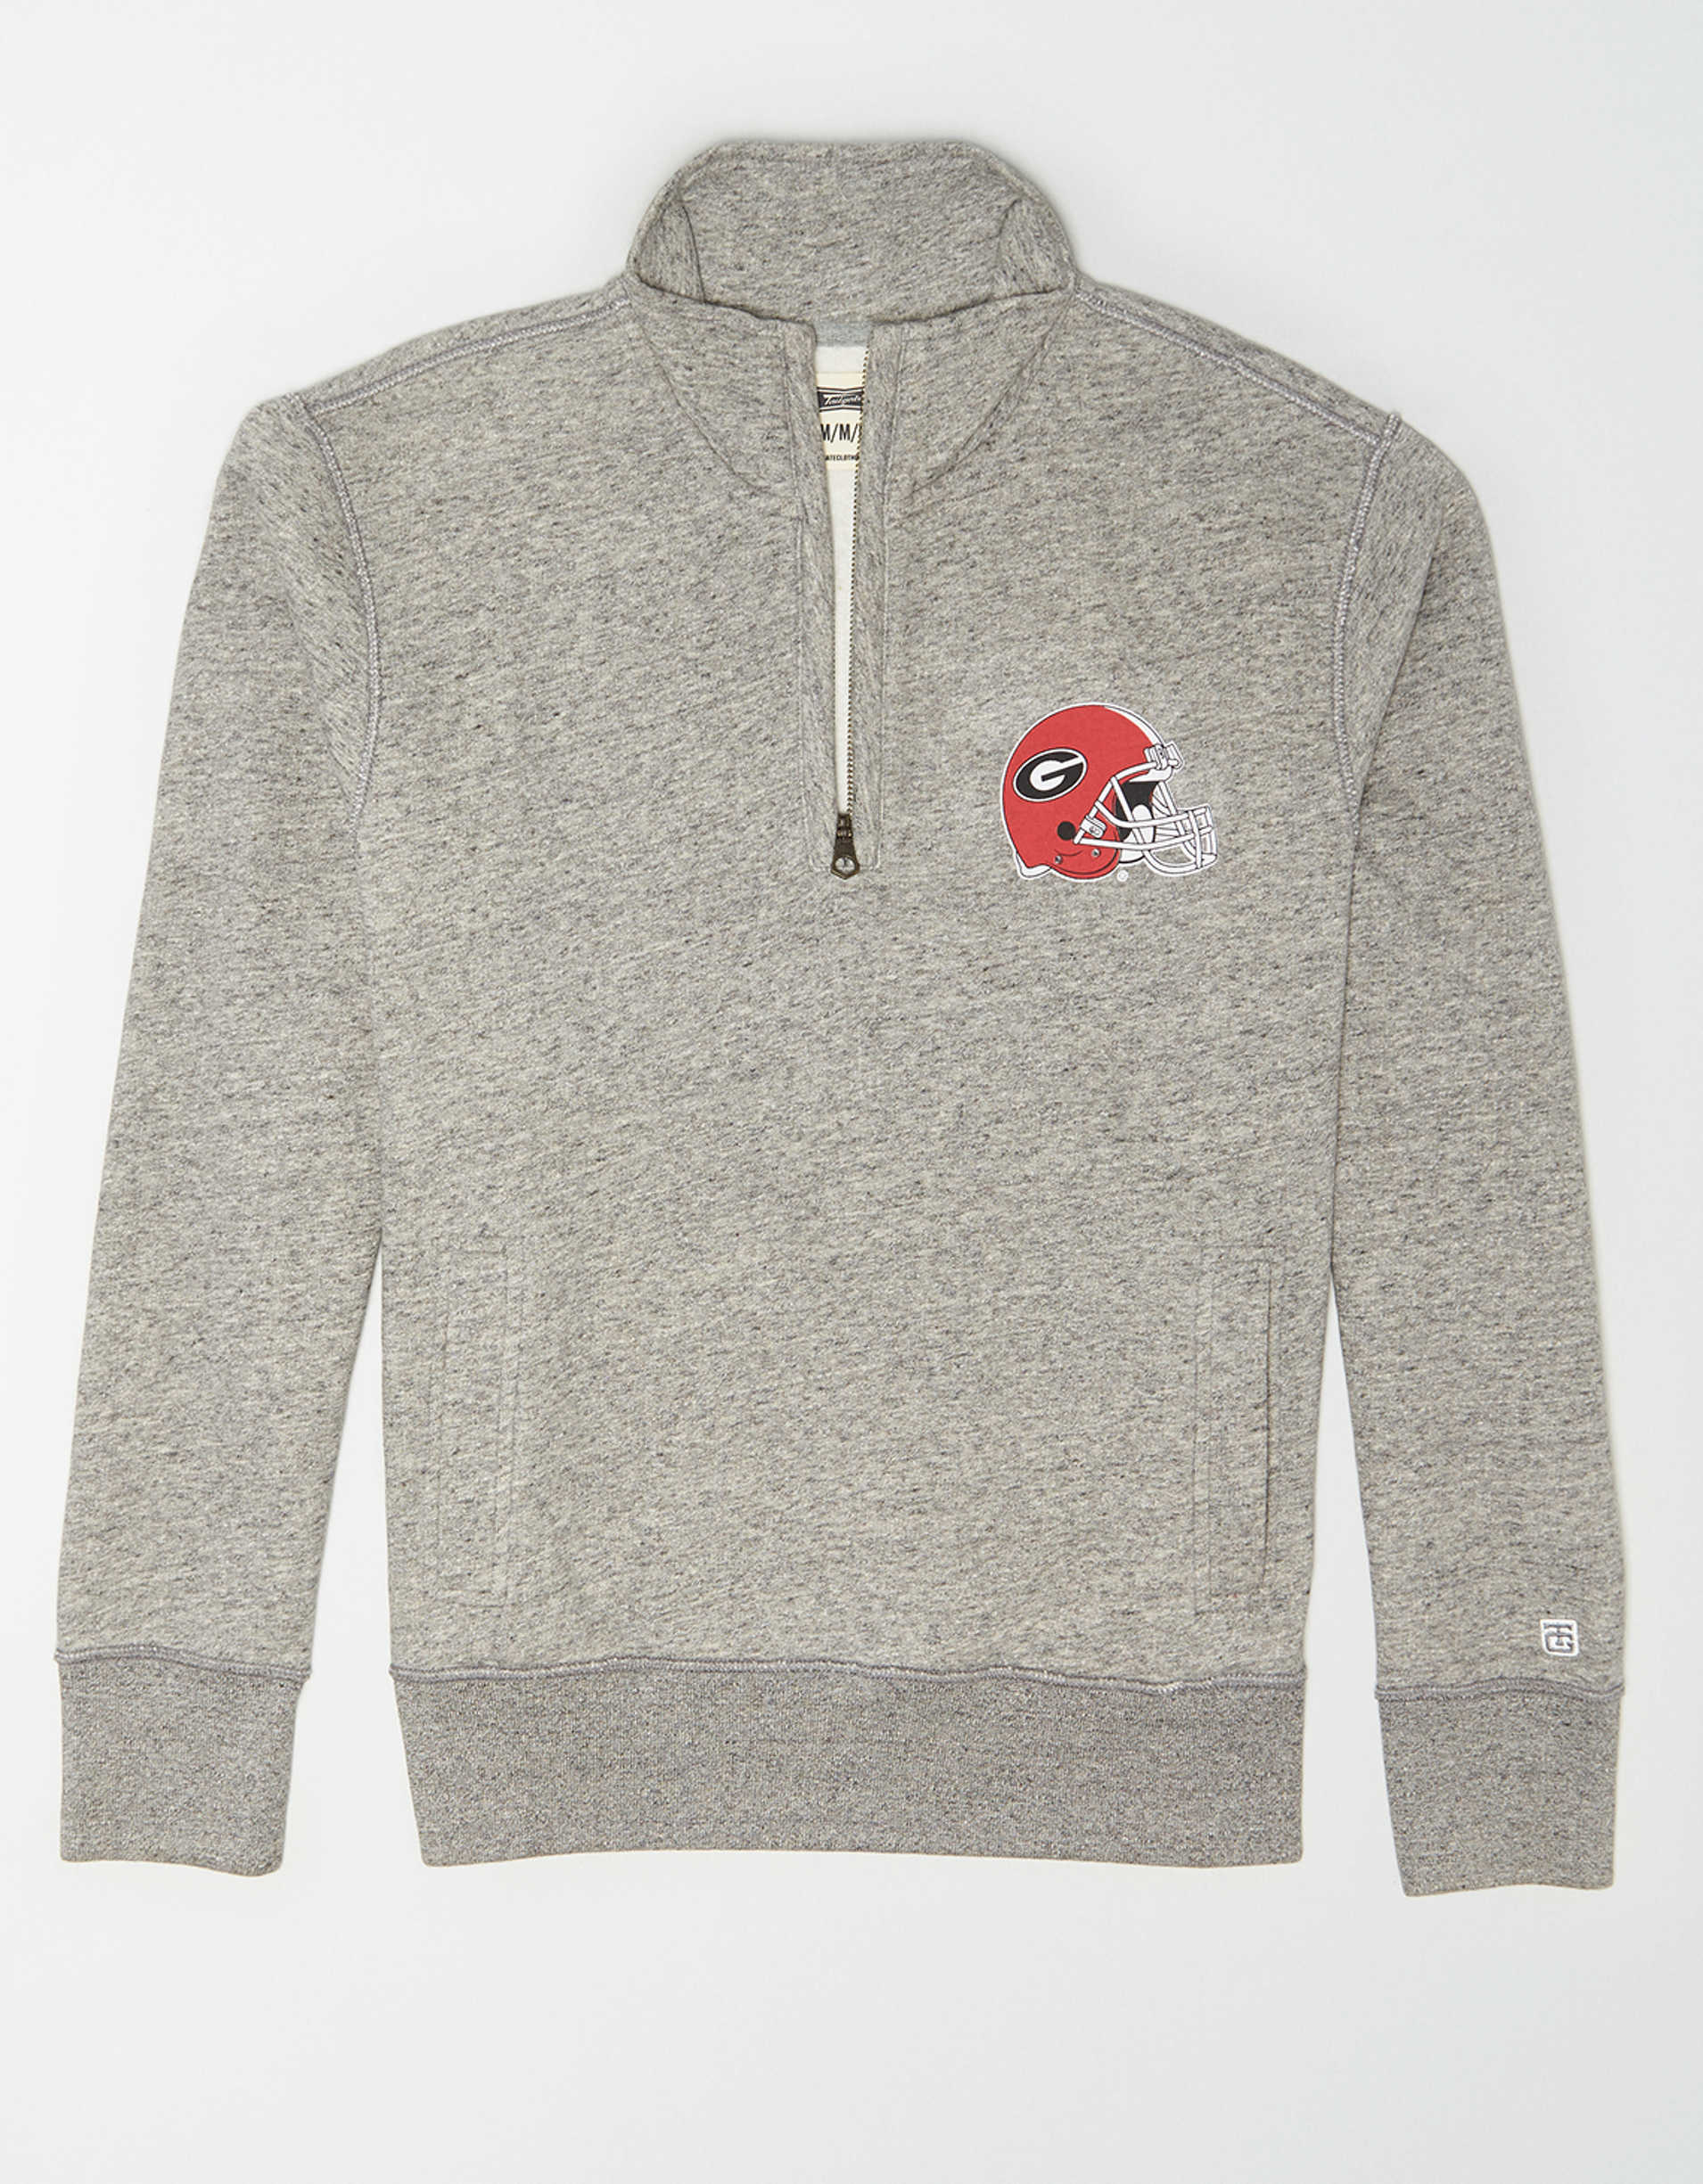 Tailgate Men's Georgia Bulldogs Quarter Zip Sweatshirt